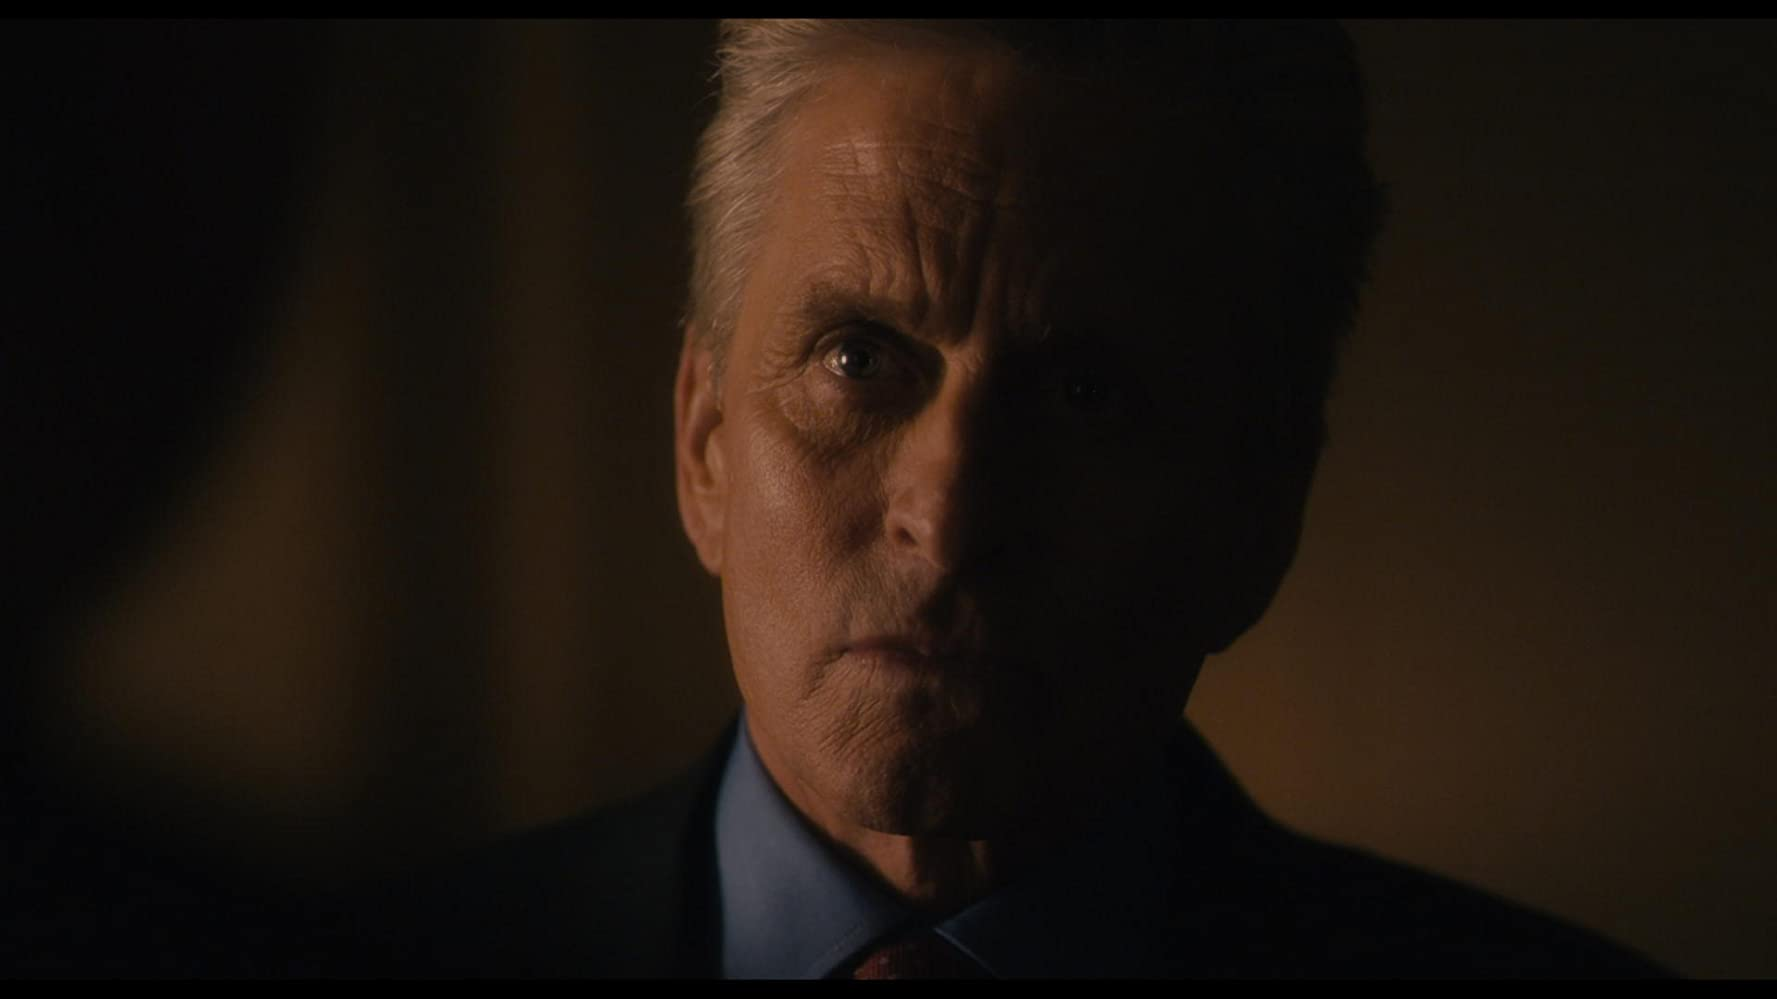 Michael Douglas in Beyond a Reasonable Doubt (2009)